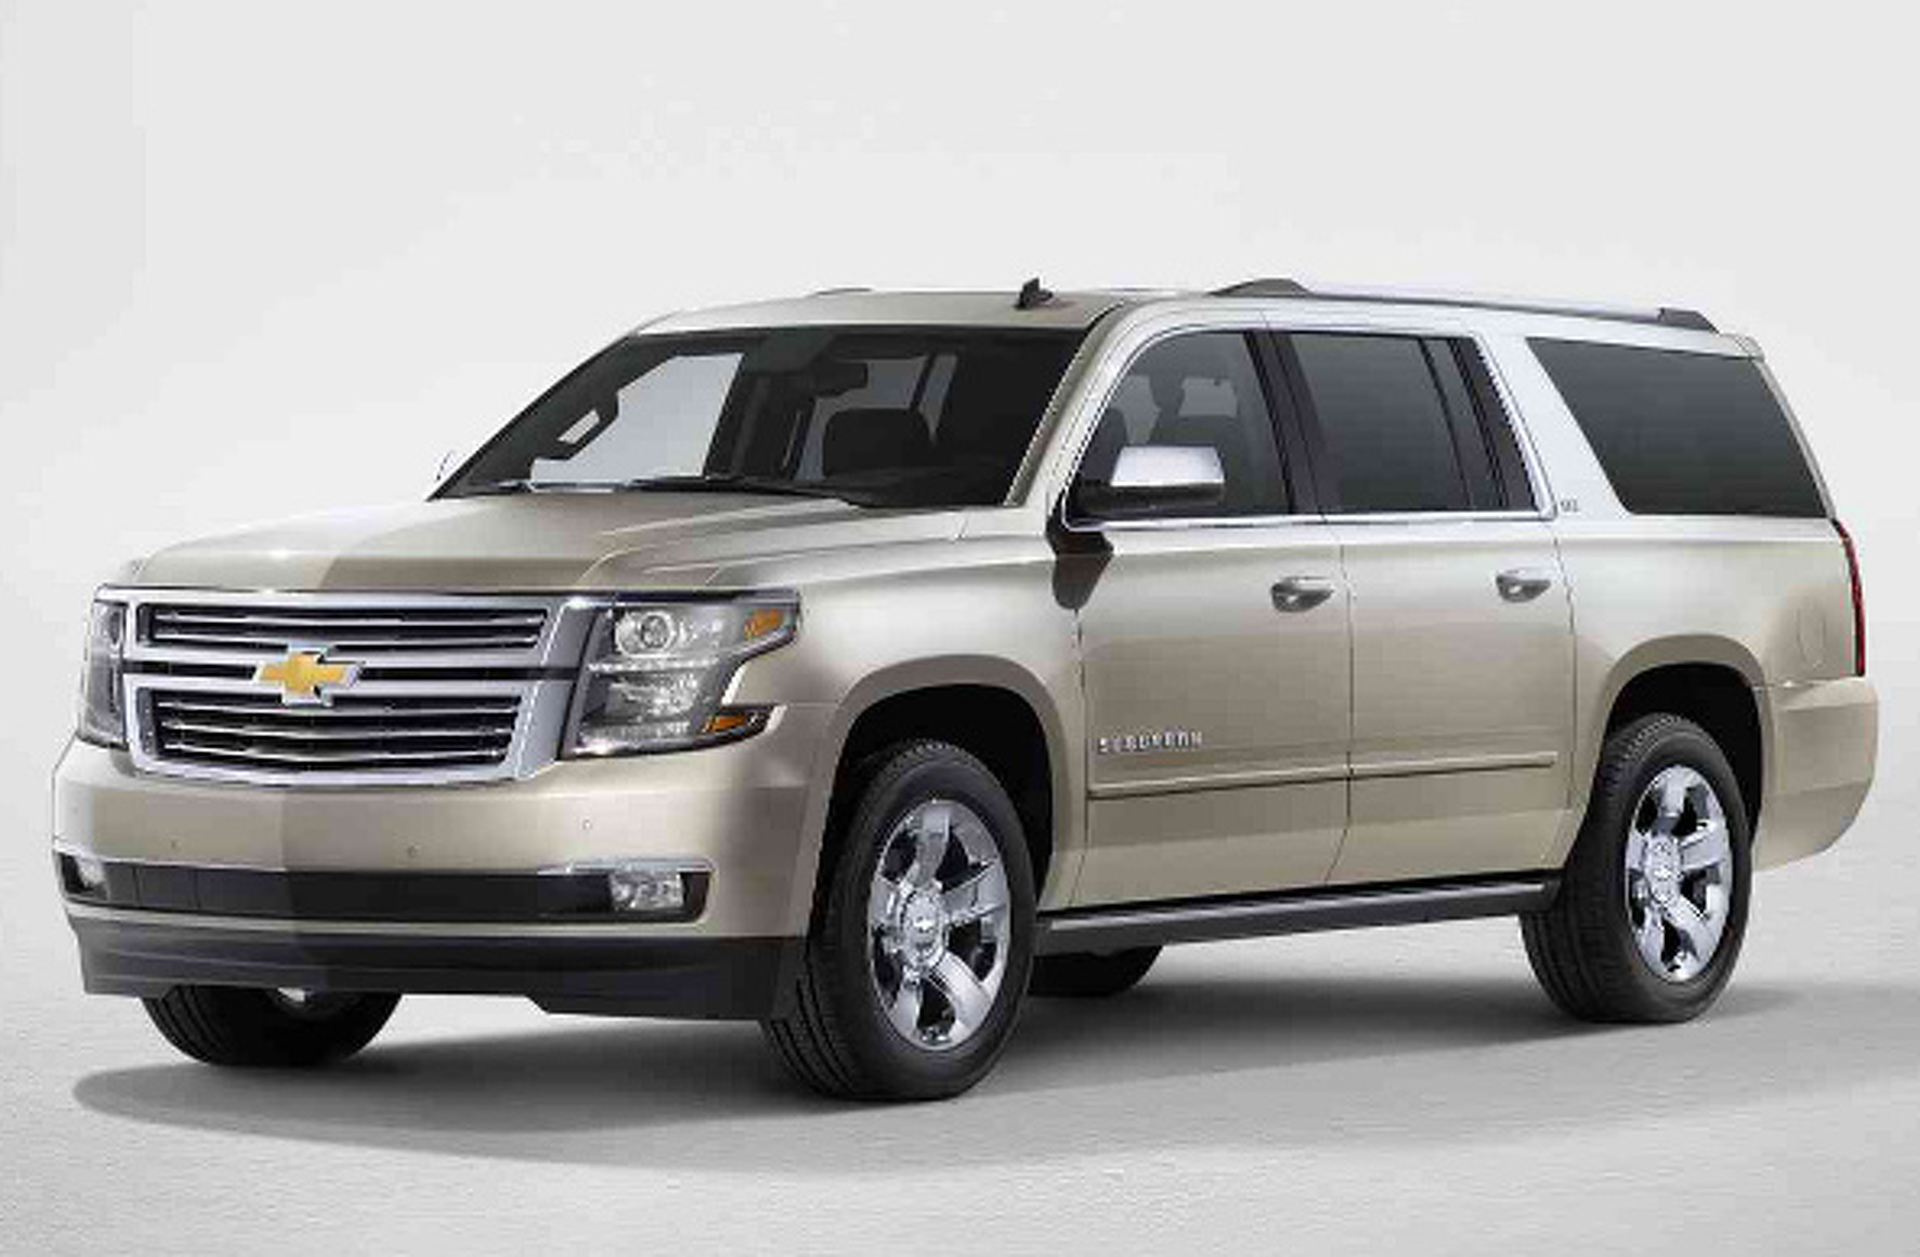 2015 Tahoe, Suburban, Yukon Retain Truck DNA, Increase Efficiency